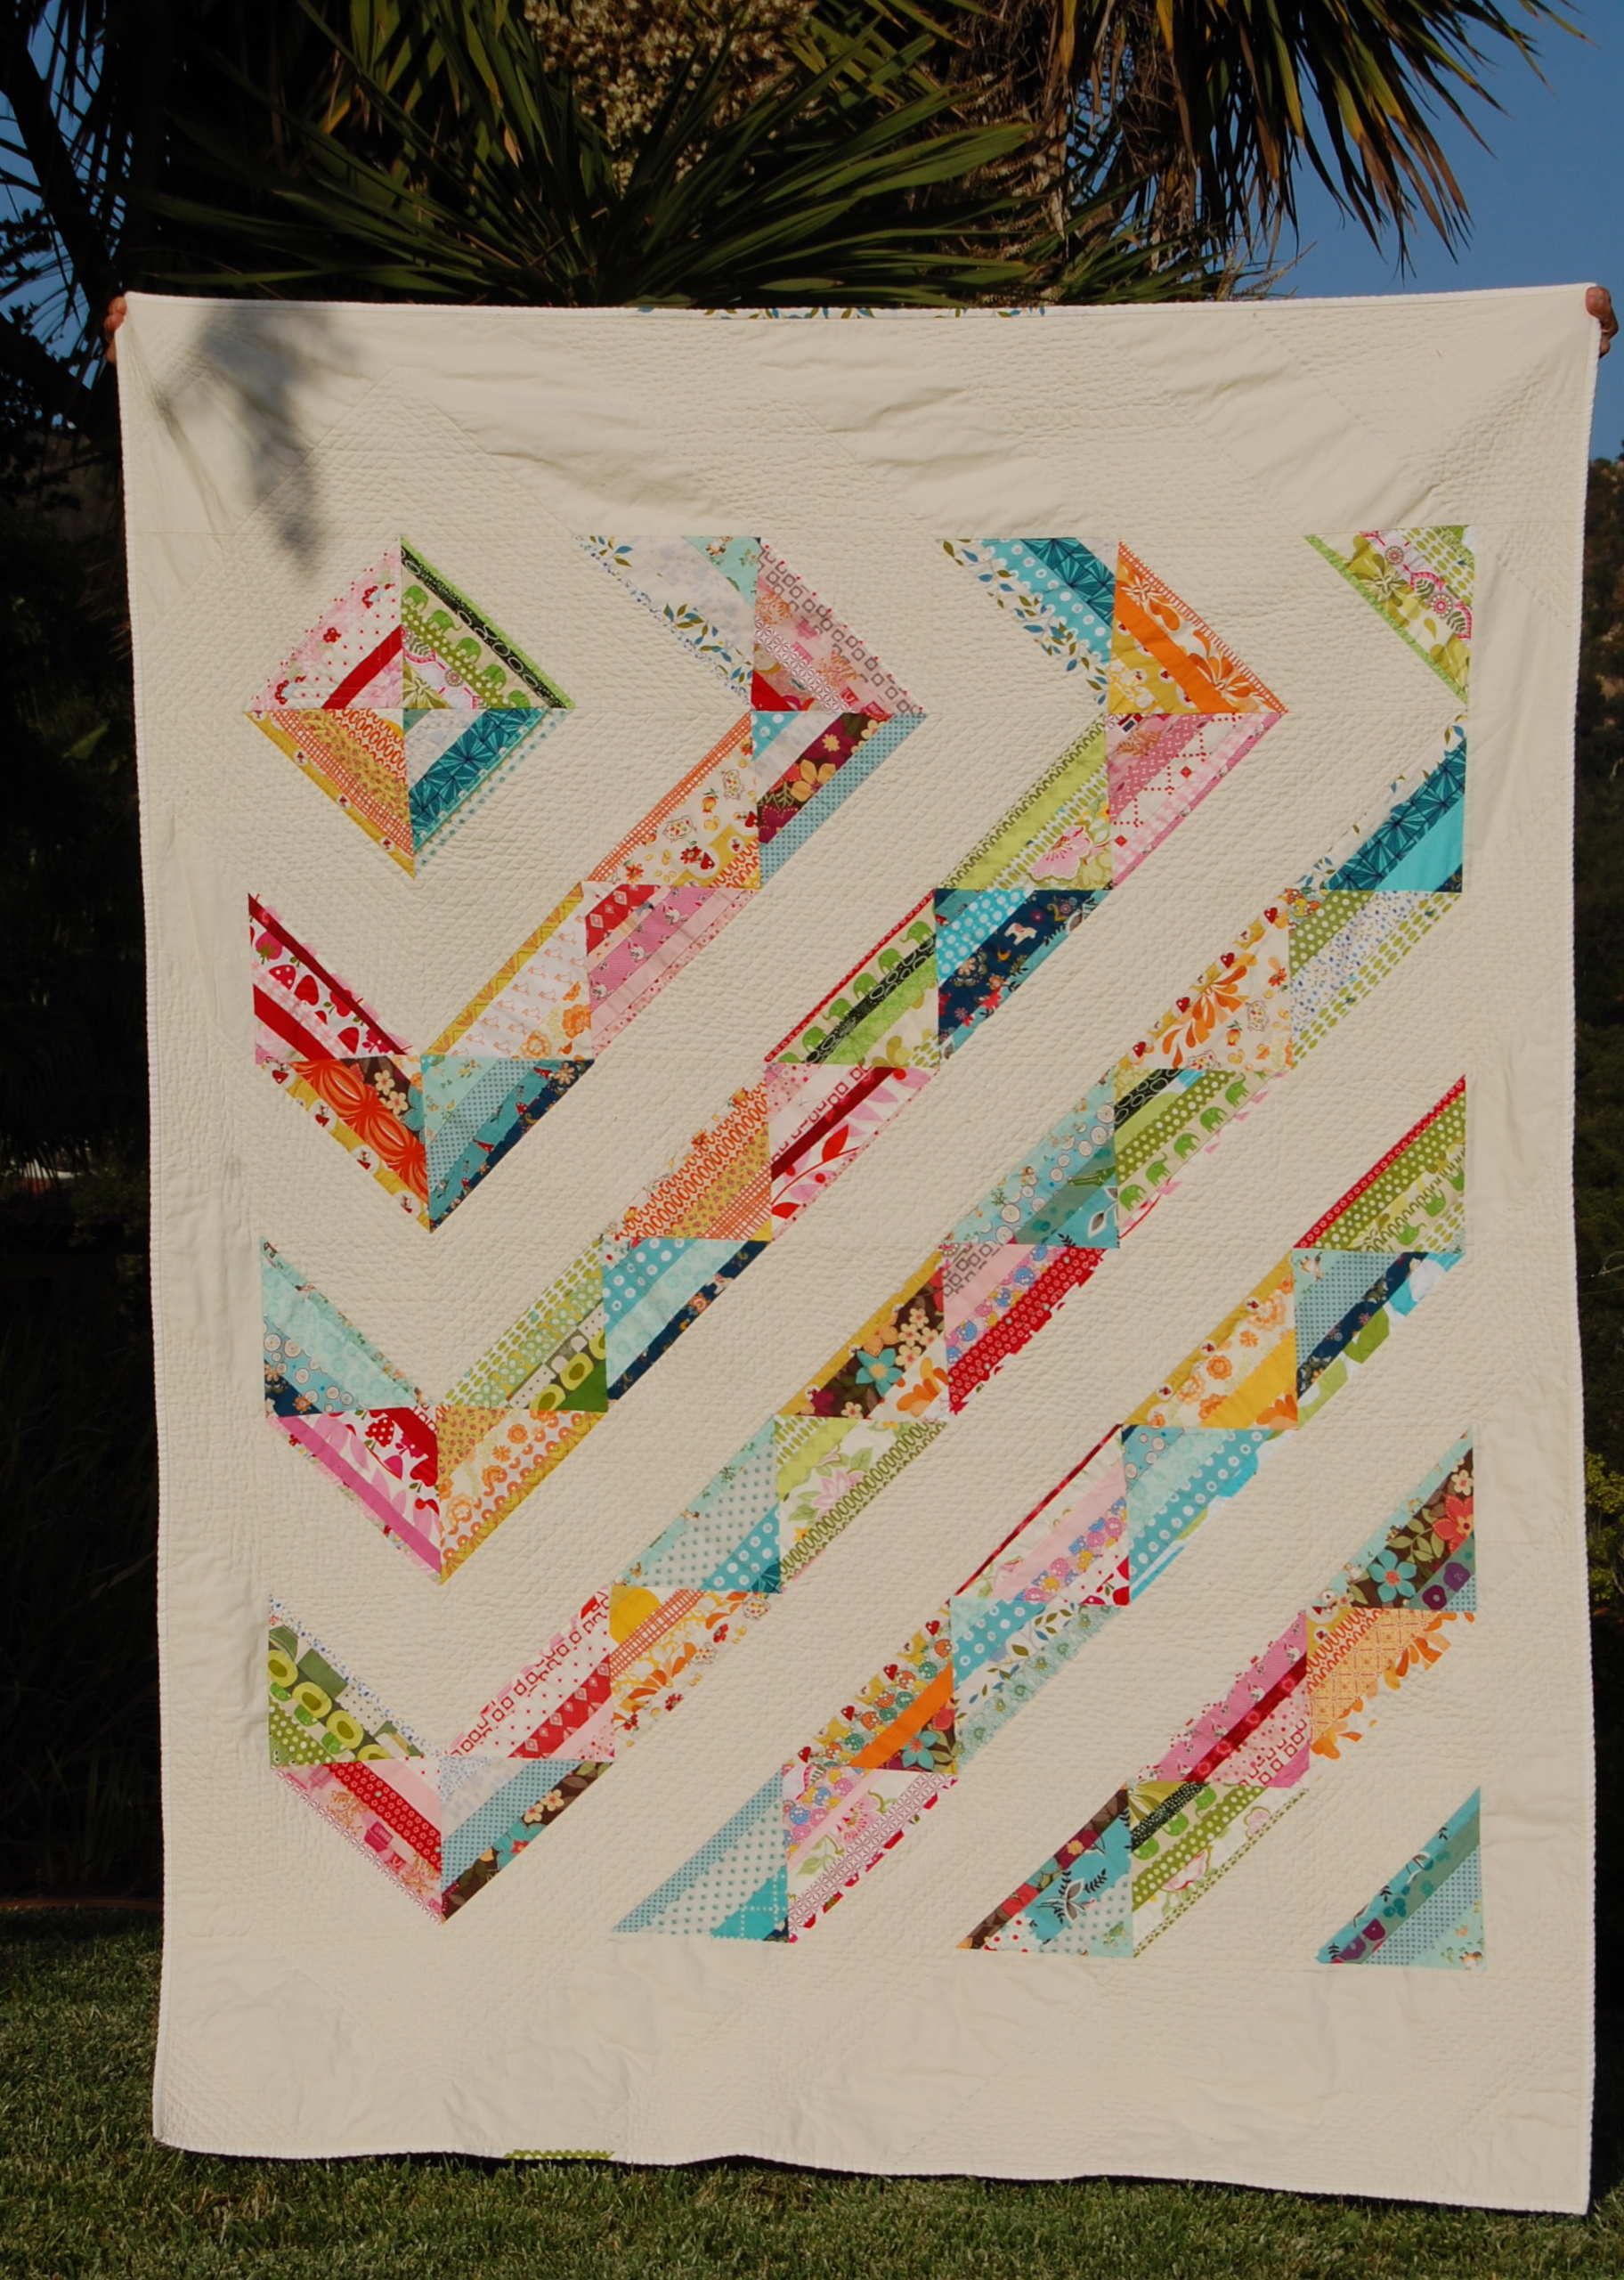 The happy scrappy birthday quilt finished blooming for Scrap quilt